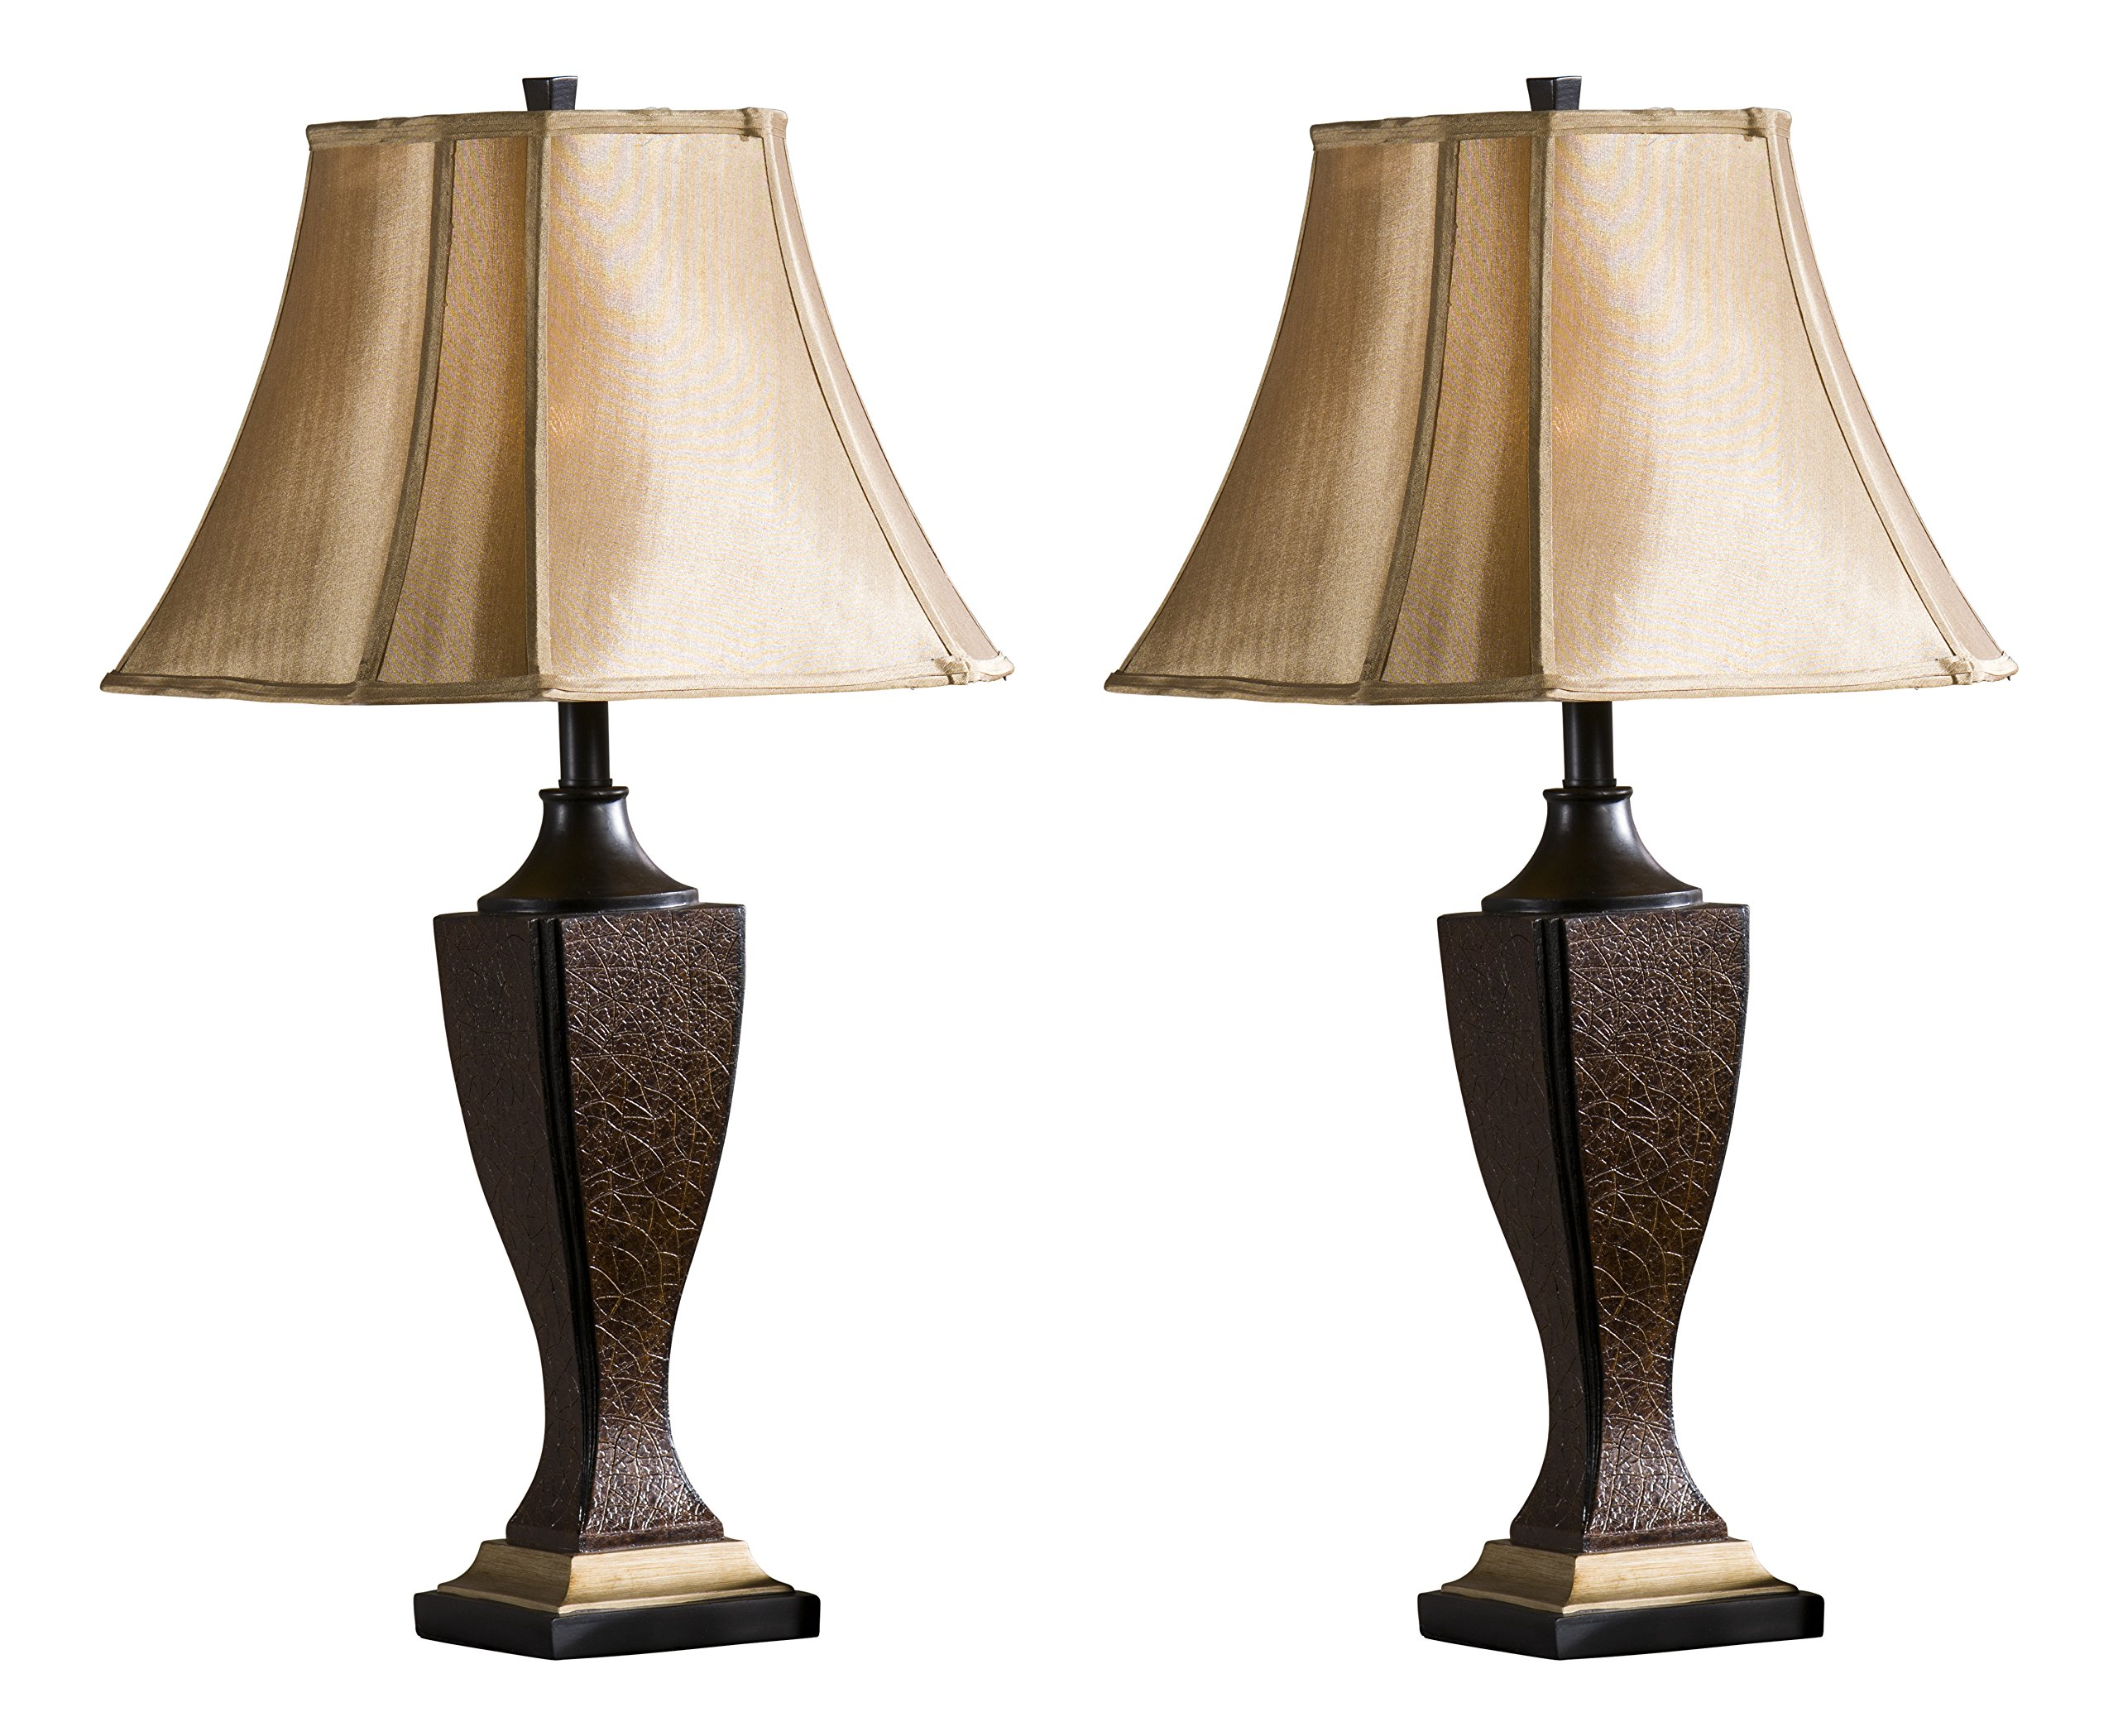 InRoom Designs L632 Kings Brand Crackle Fabric Shade Table (Set of 2 Lamps), Brown